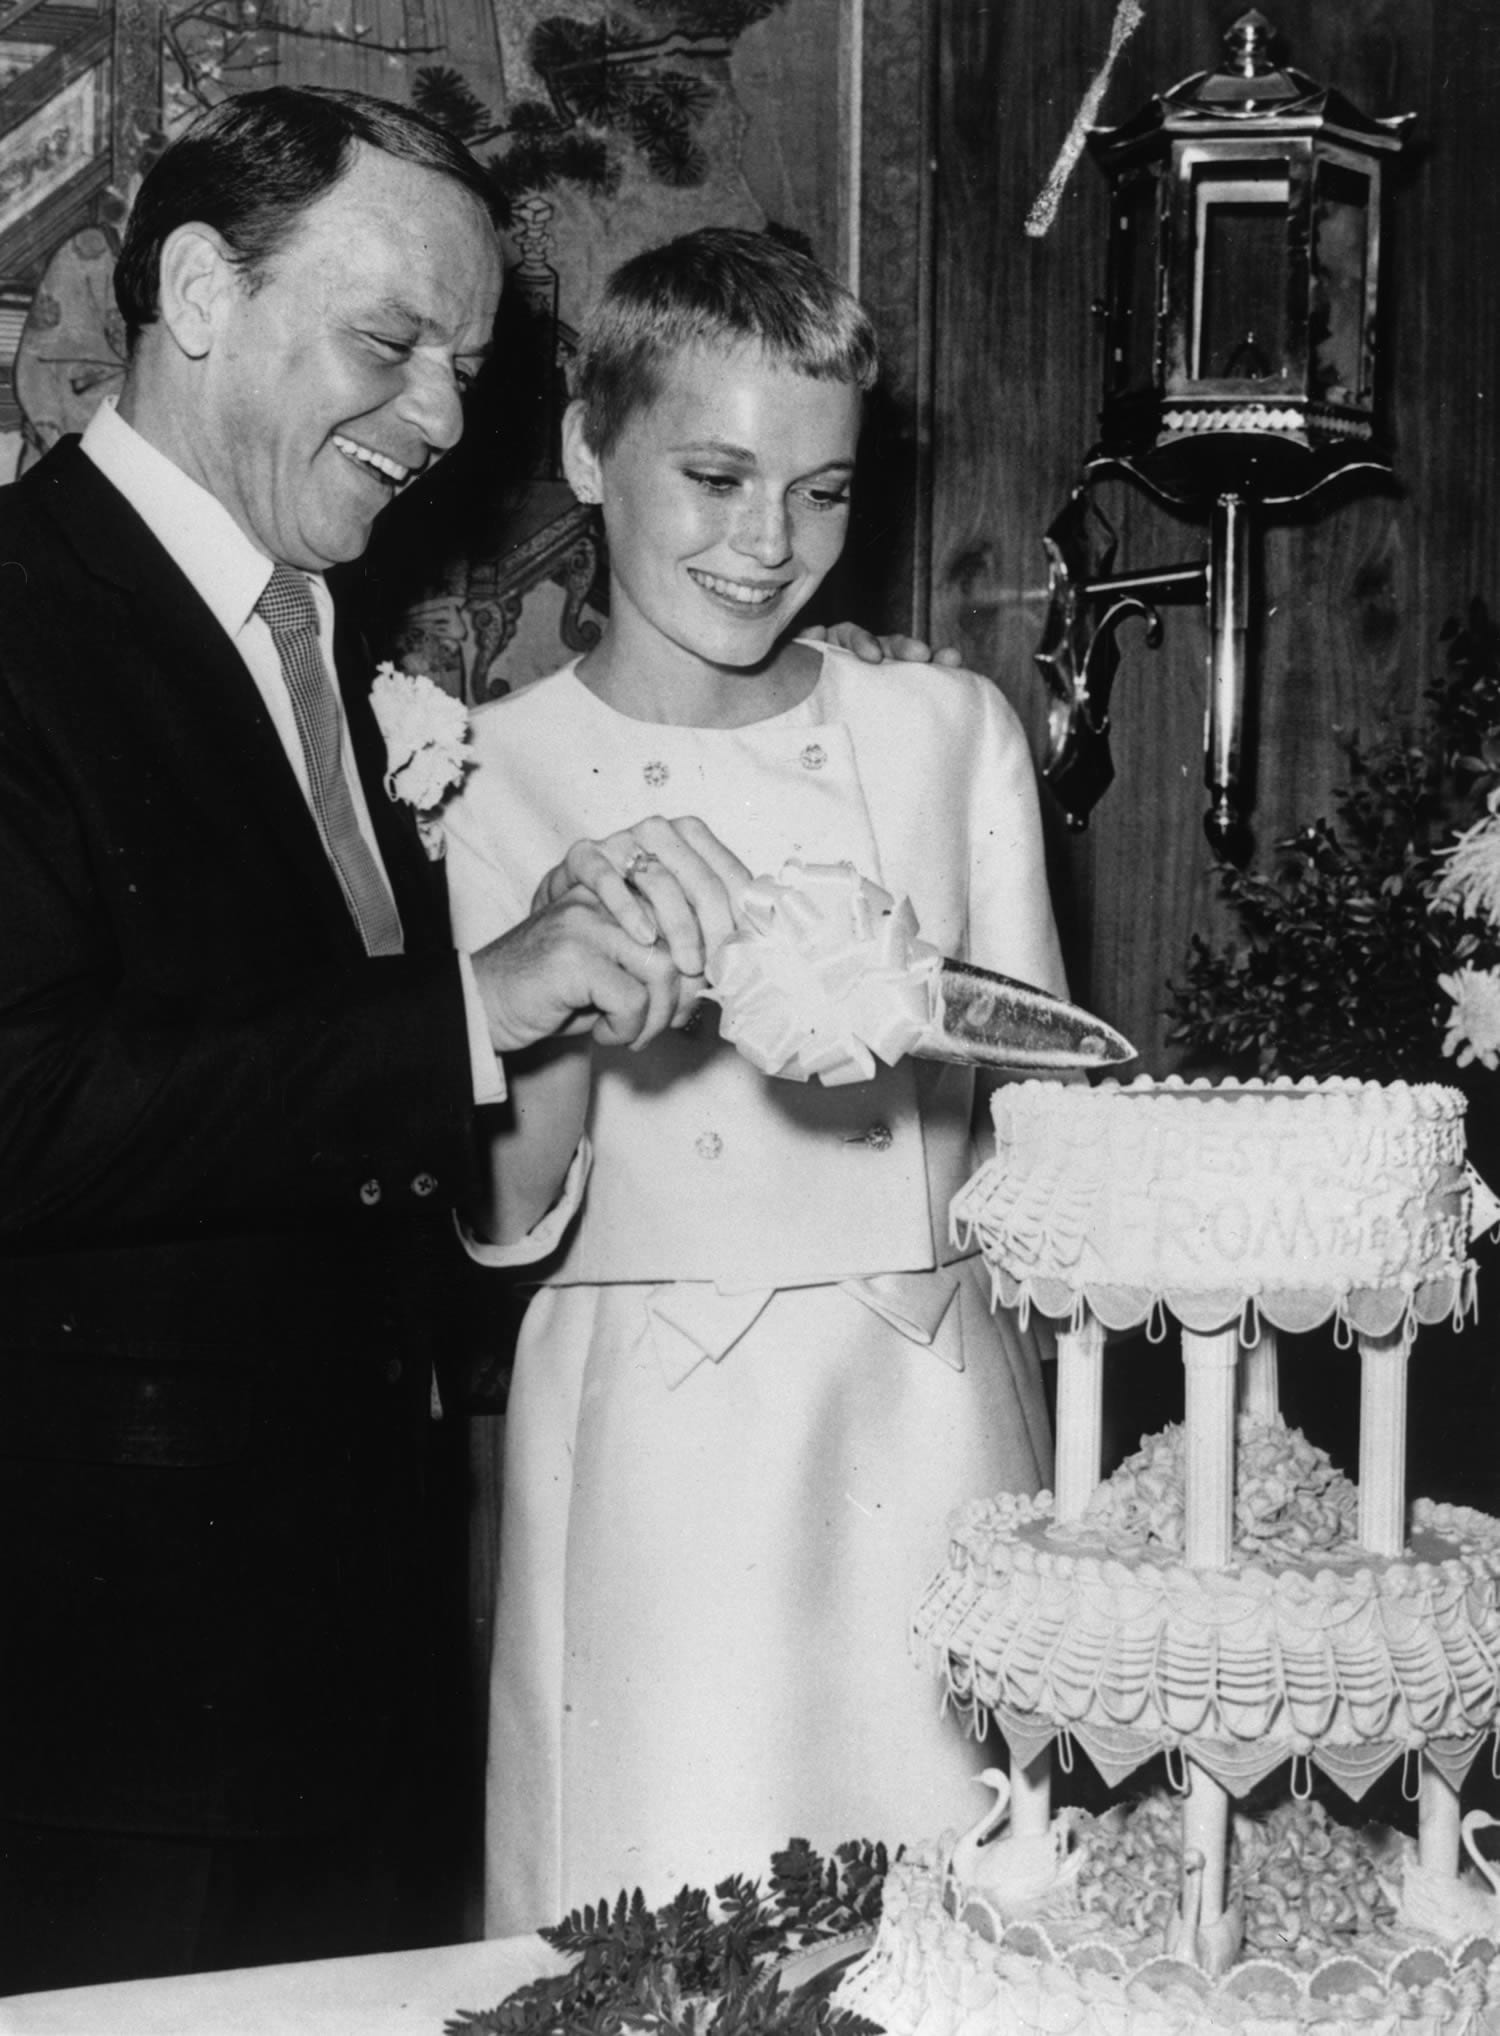 Throwback Thursday: The most iconic celebrity weddings